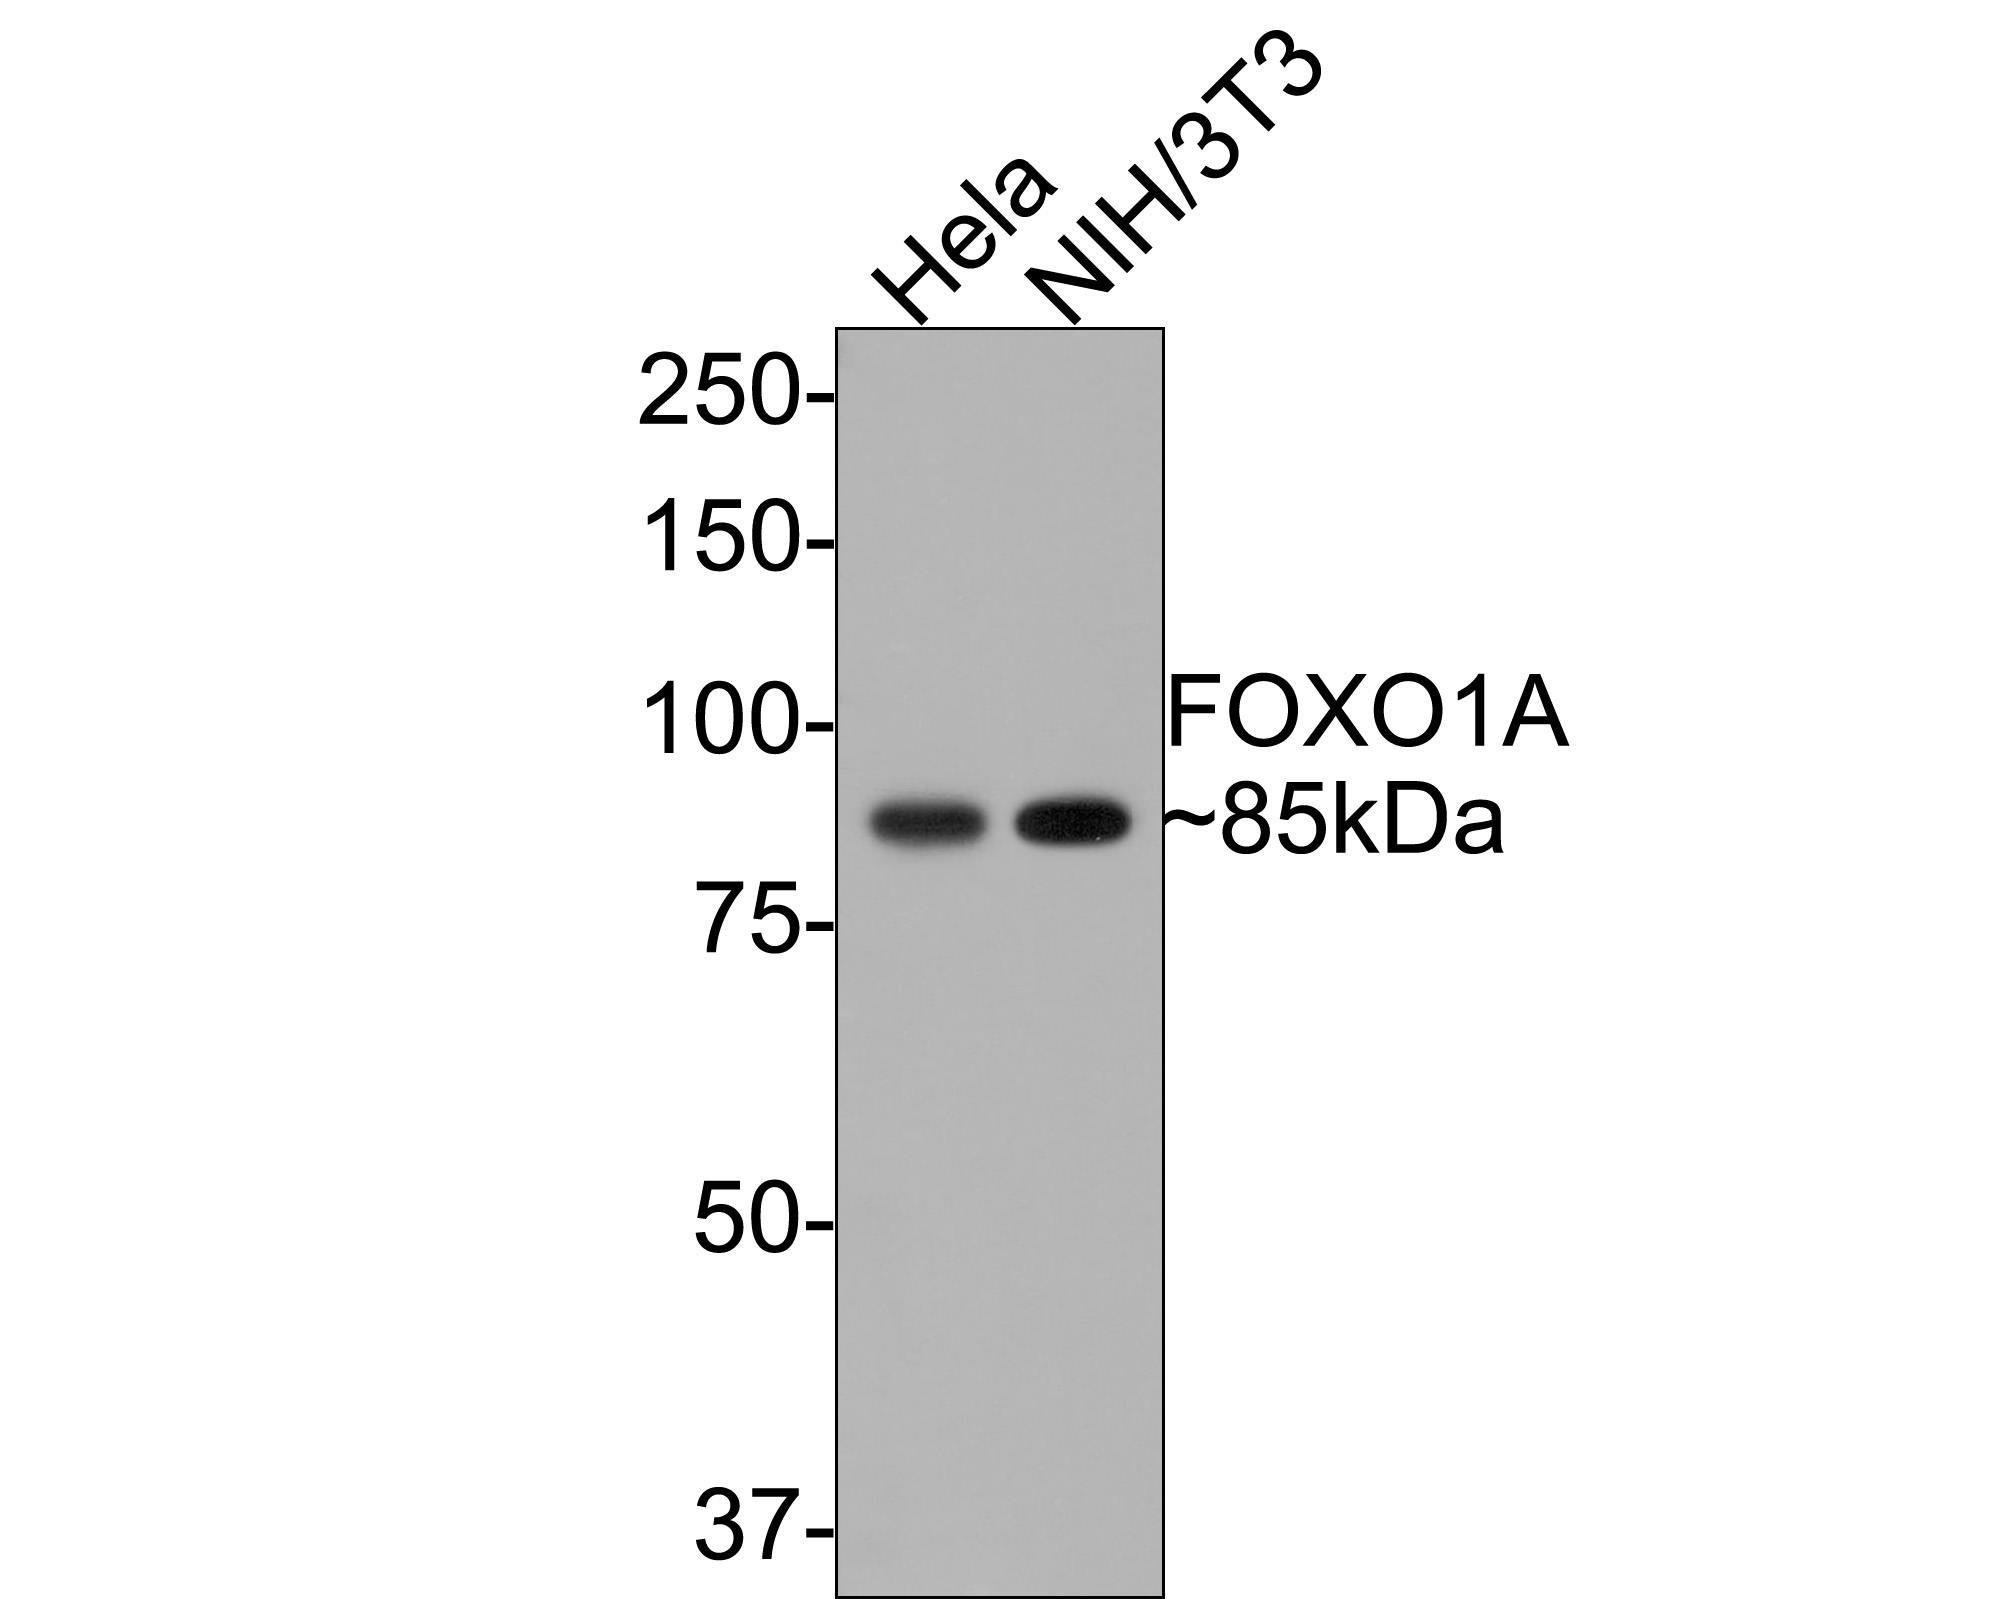 Western blot analysis of FOXO1A on different lysates. Proteins were transferred to a PVDF membrane and blocked with 5% BSA in PBS for 1 hour at room temperature. The primary antibody (ET1608-25, 1/500) was used in 5% BSA at room temperature for 2 hours. Goat Anti-Rabbit IgG - HRP Secondary Antibody (HA1001) at 1:5,000 dilution was used for 1 hour at room temperature.<br /> Positive control: <br /> Lane 1: Hela cell lysate<br /> Lane 2: NIH/3T3 cell lysate